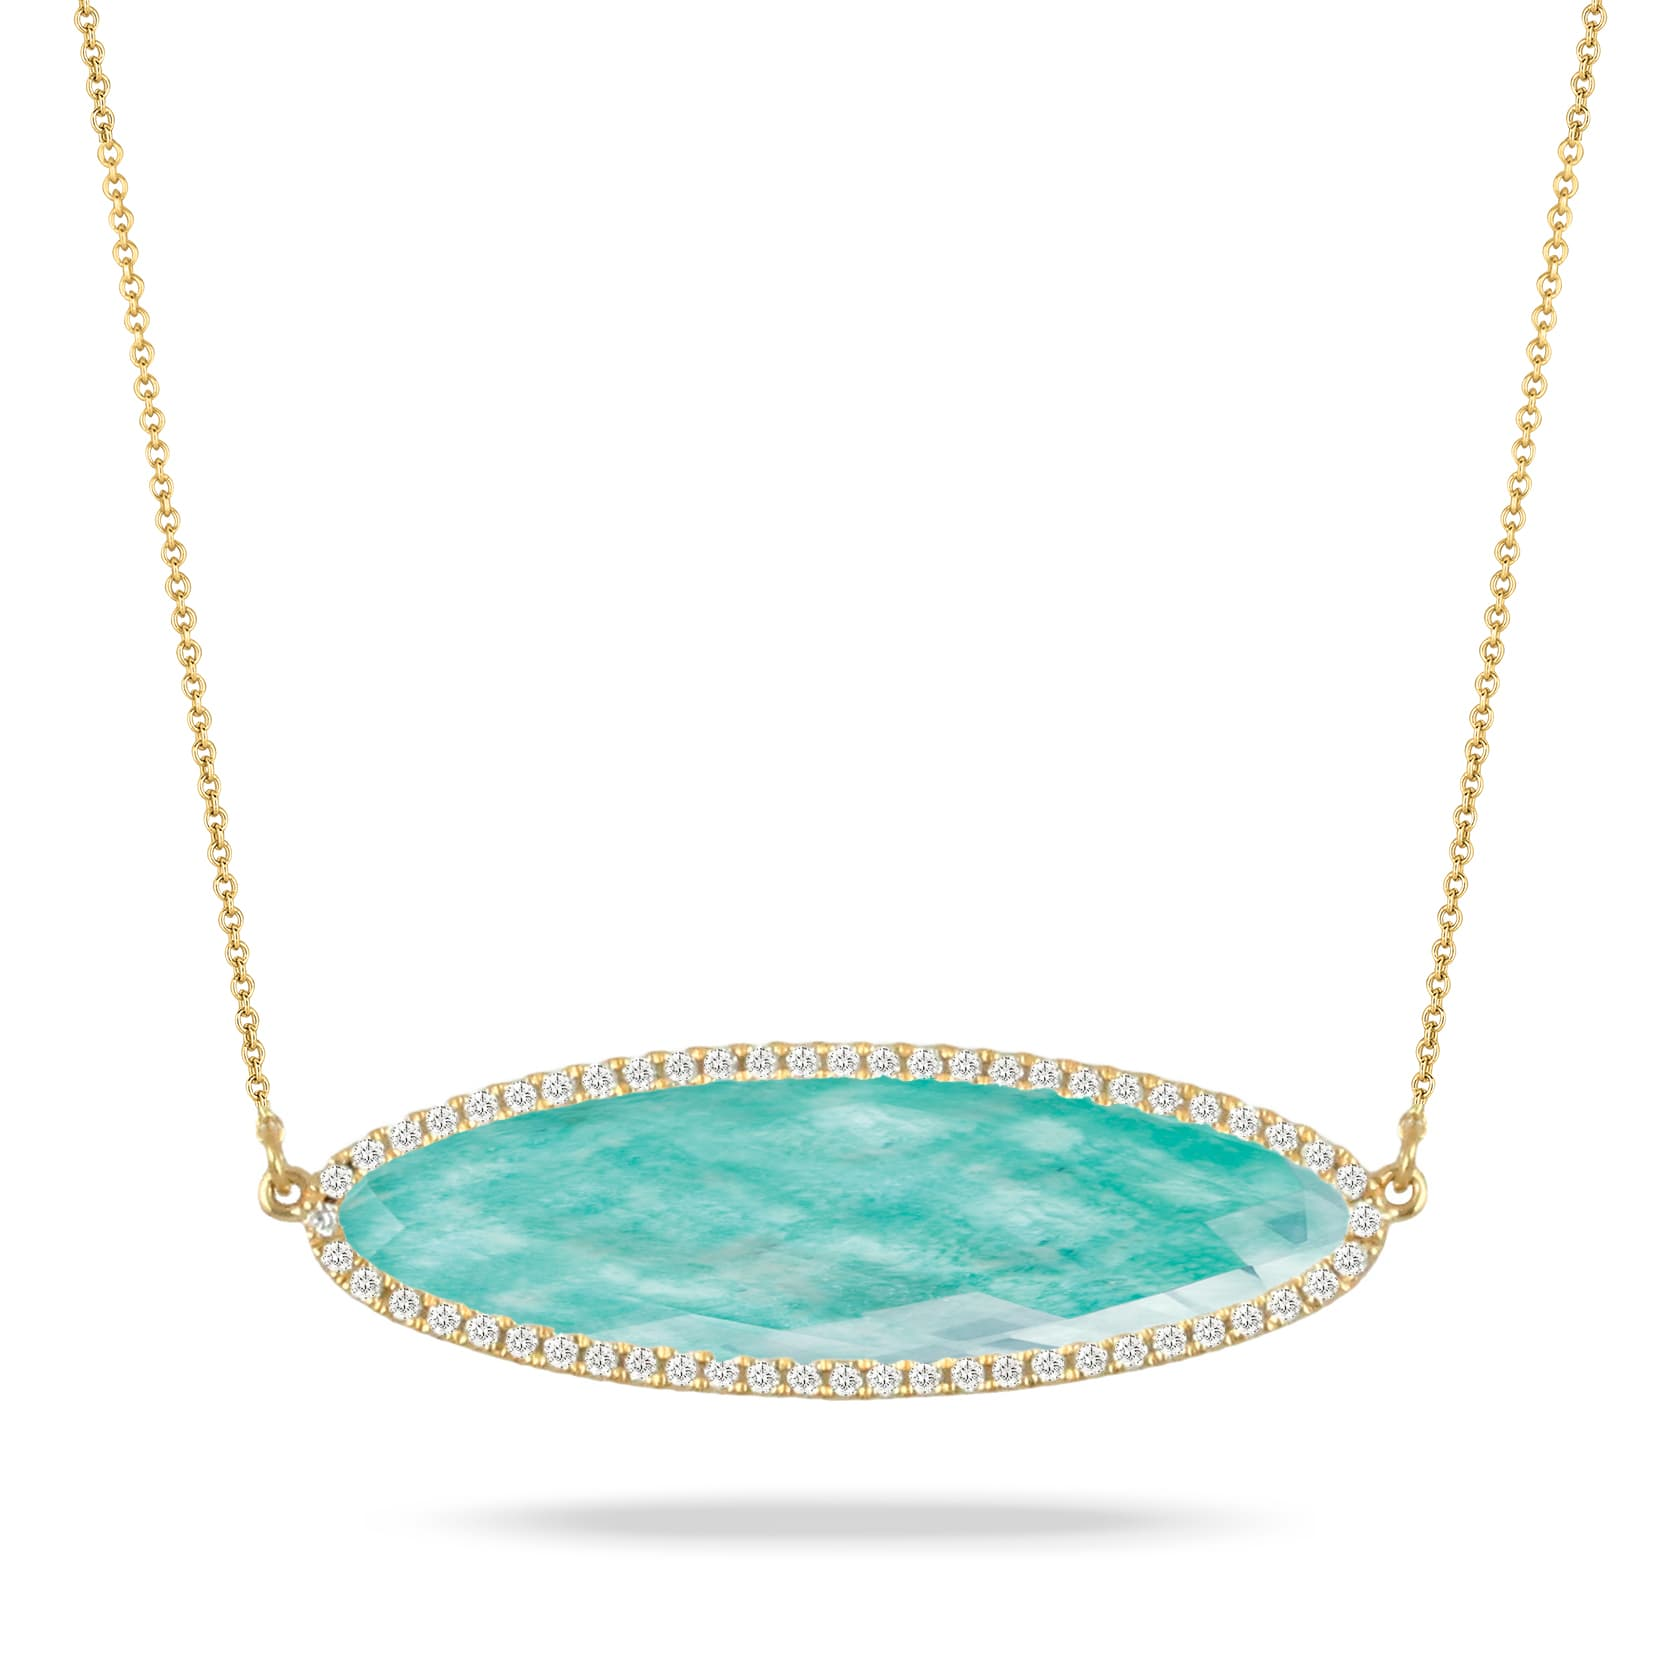 18K YELLOW GOLD DIAMOND NECKLACE WITH CLEAR QUARTZ OVER AMAZONITE